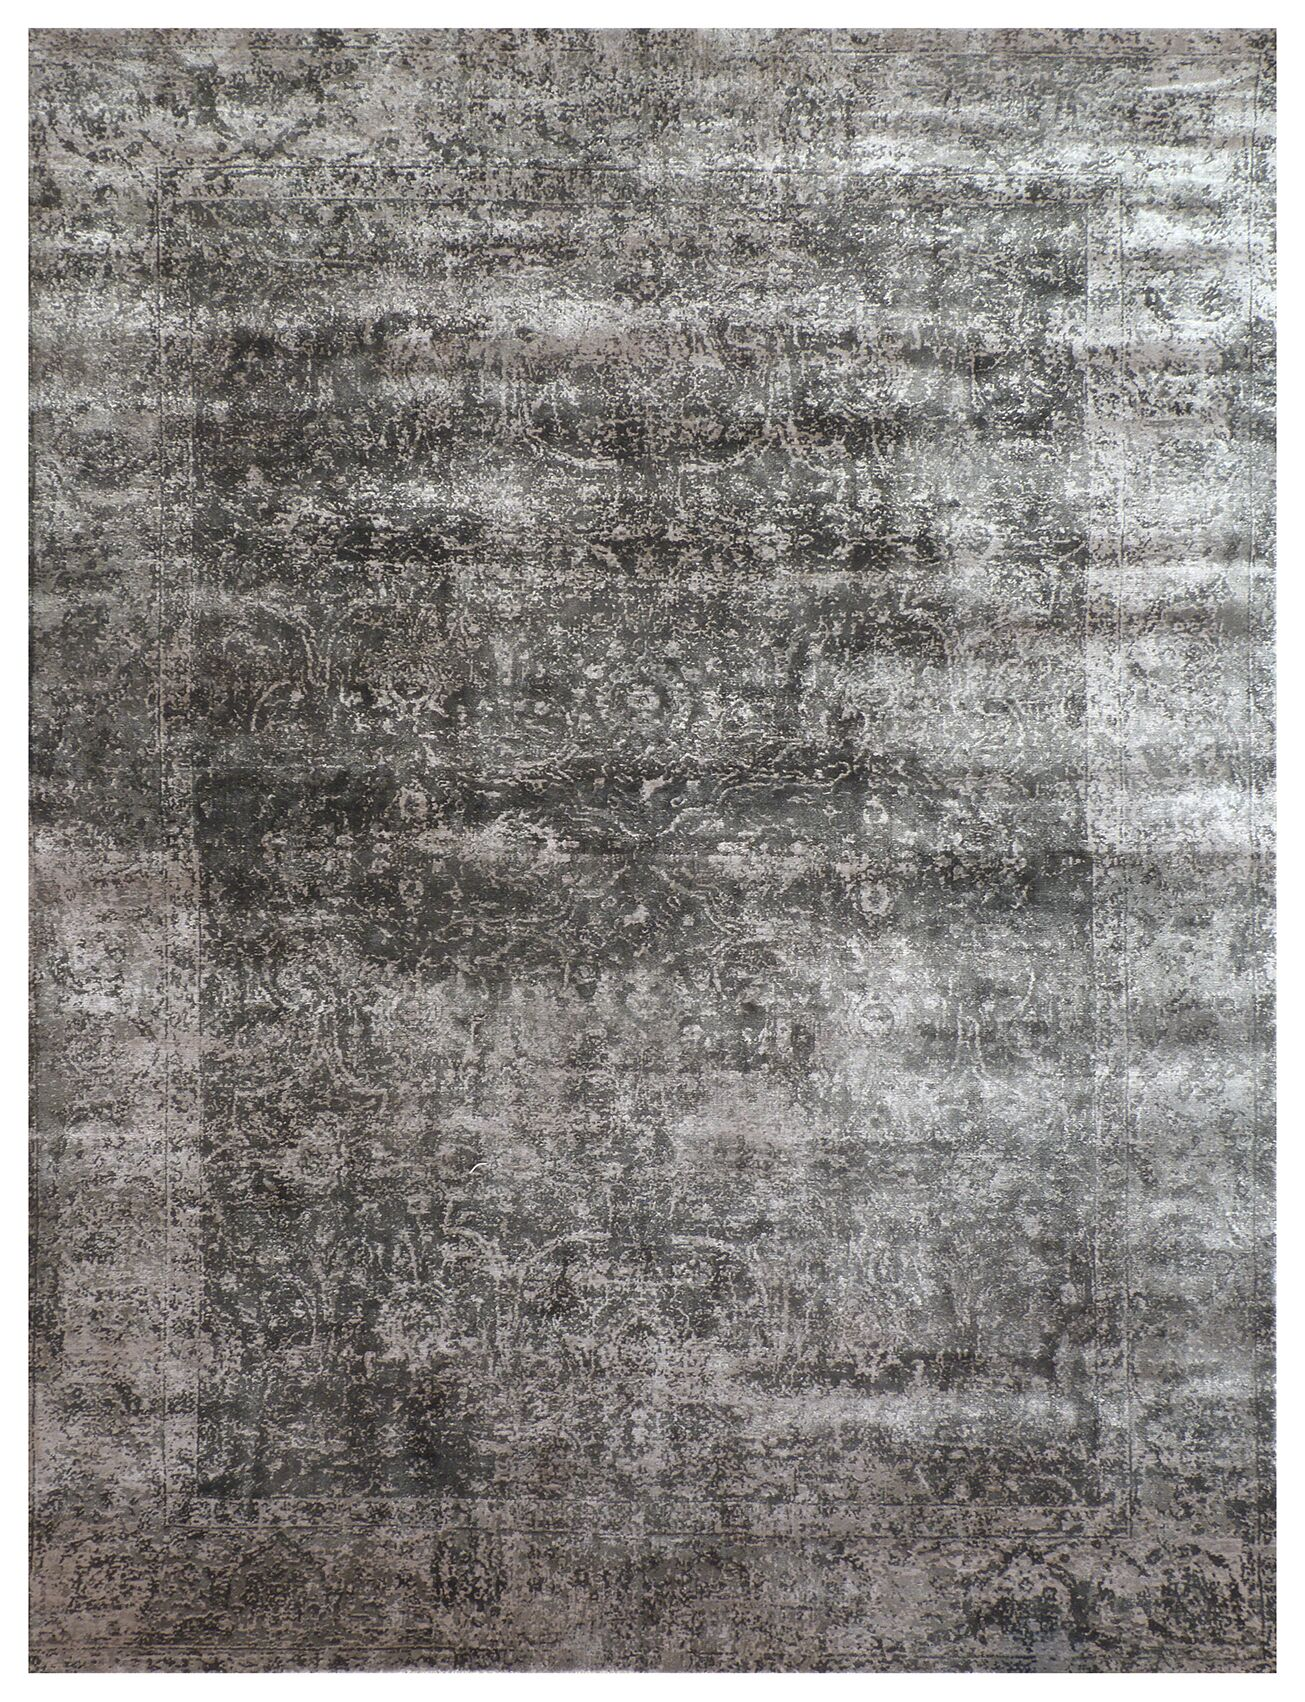 Cassina Hand-Woven Charcoal Area Rug Rug Size: Rectangle 12' x 15'